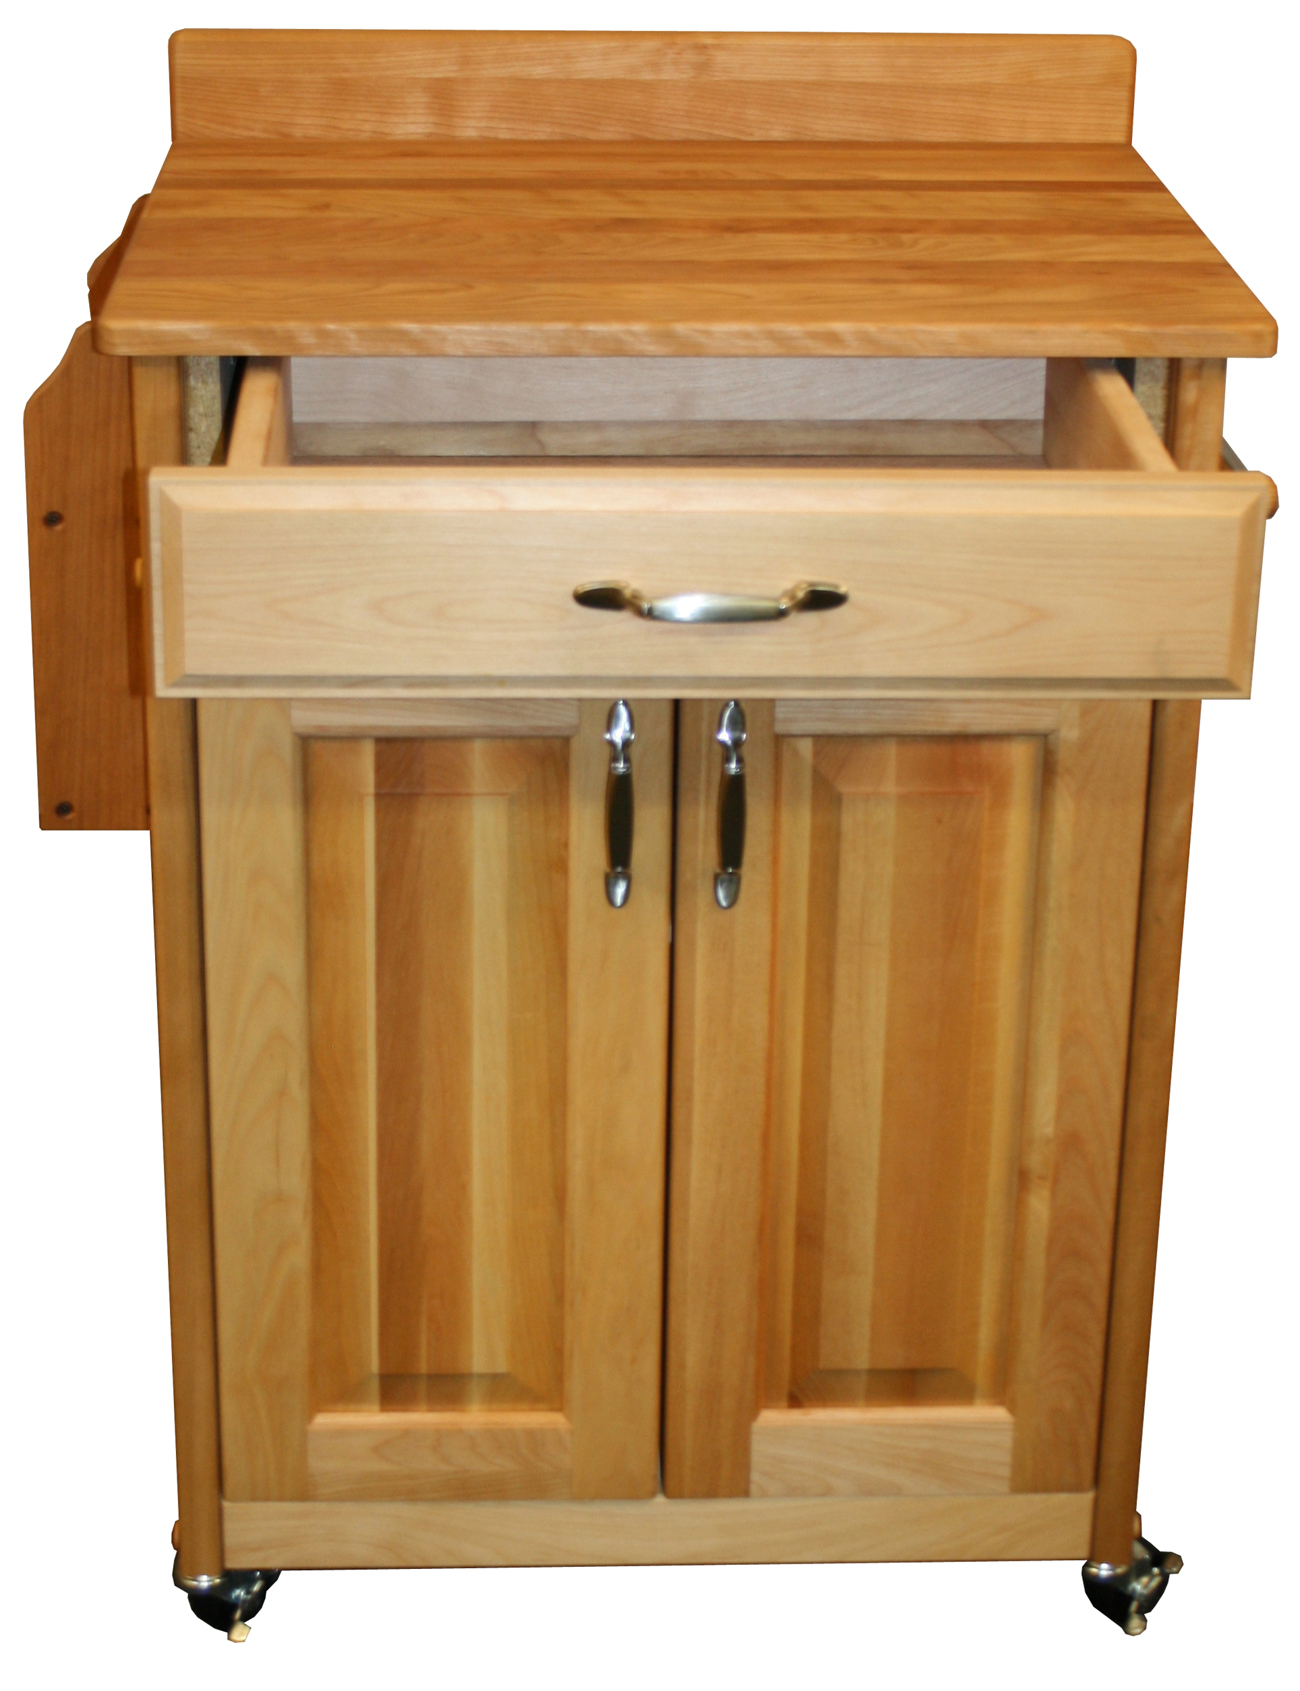 catskill craftsmen butcher block cart with backsplash and raised panel doors model 61532 - Raised Panel Restaurant 2016